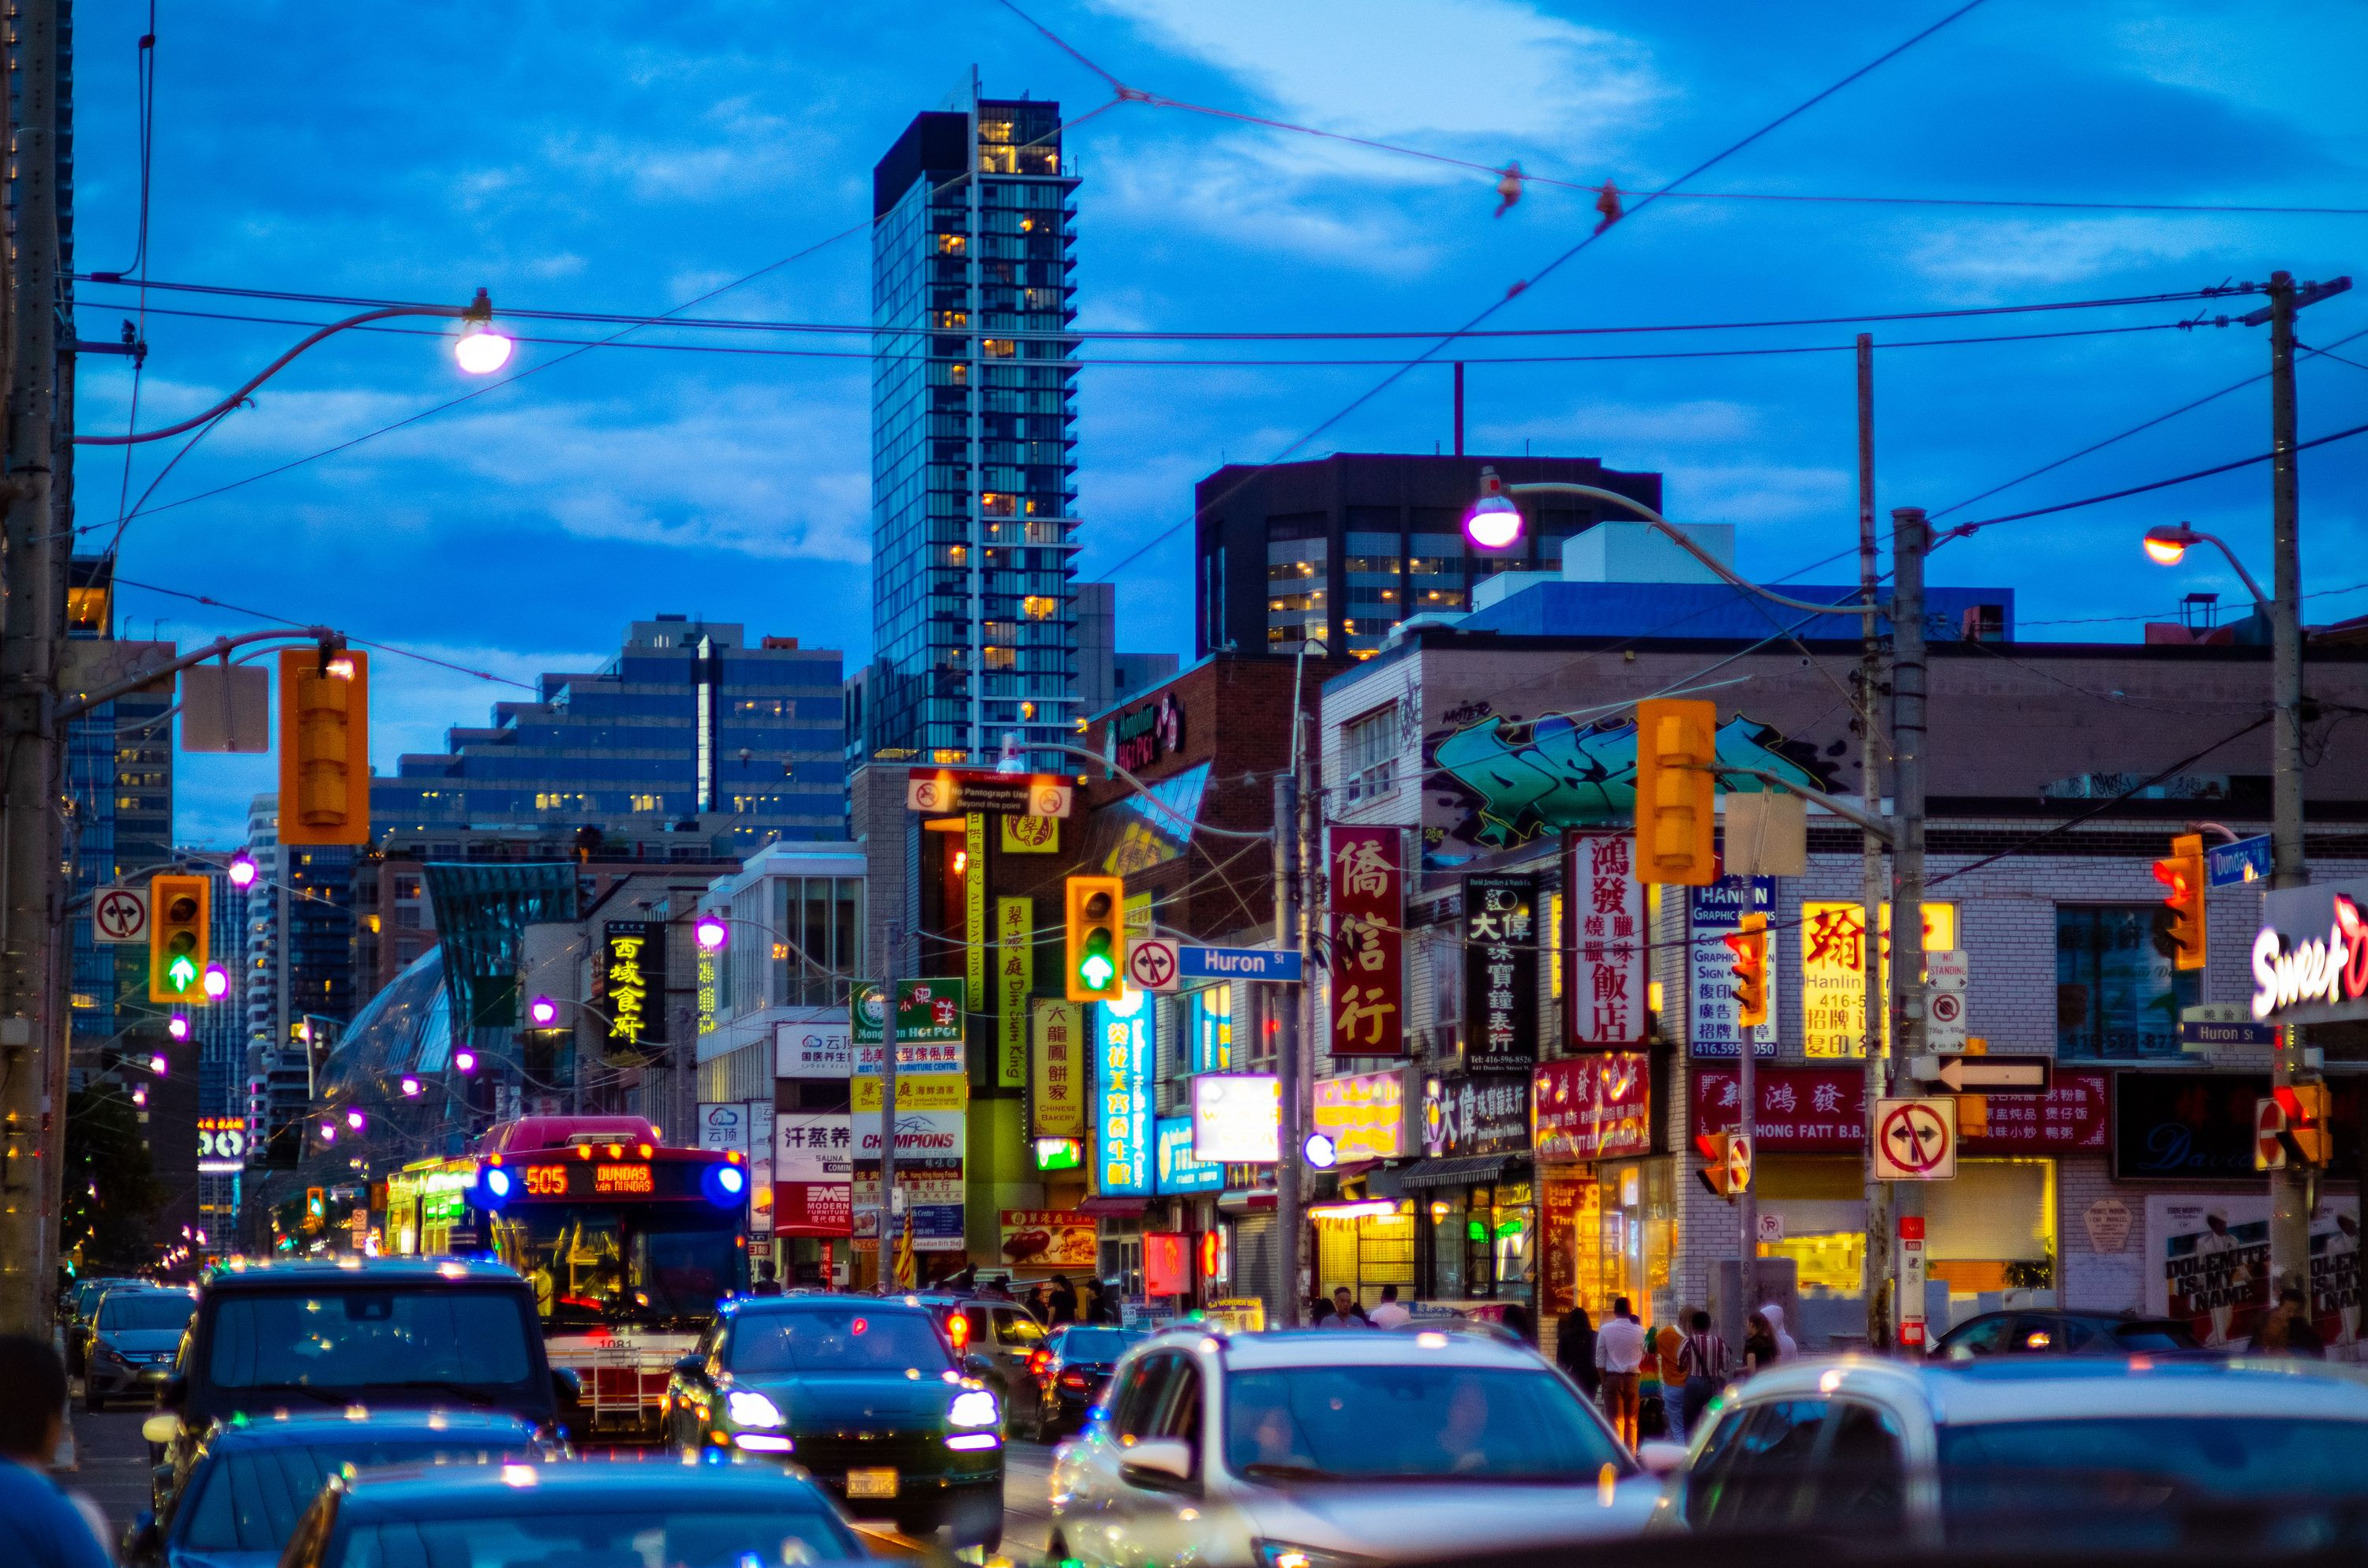 China Town in Toronto